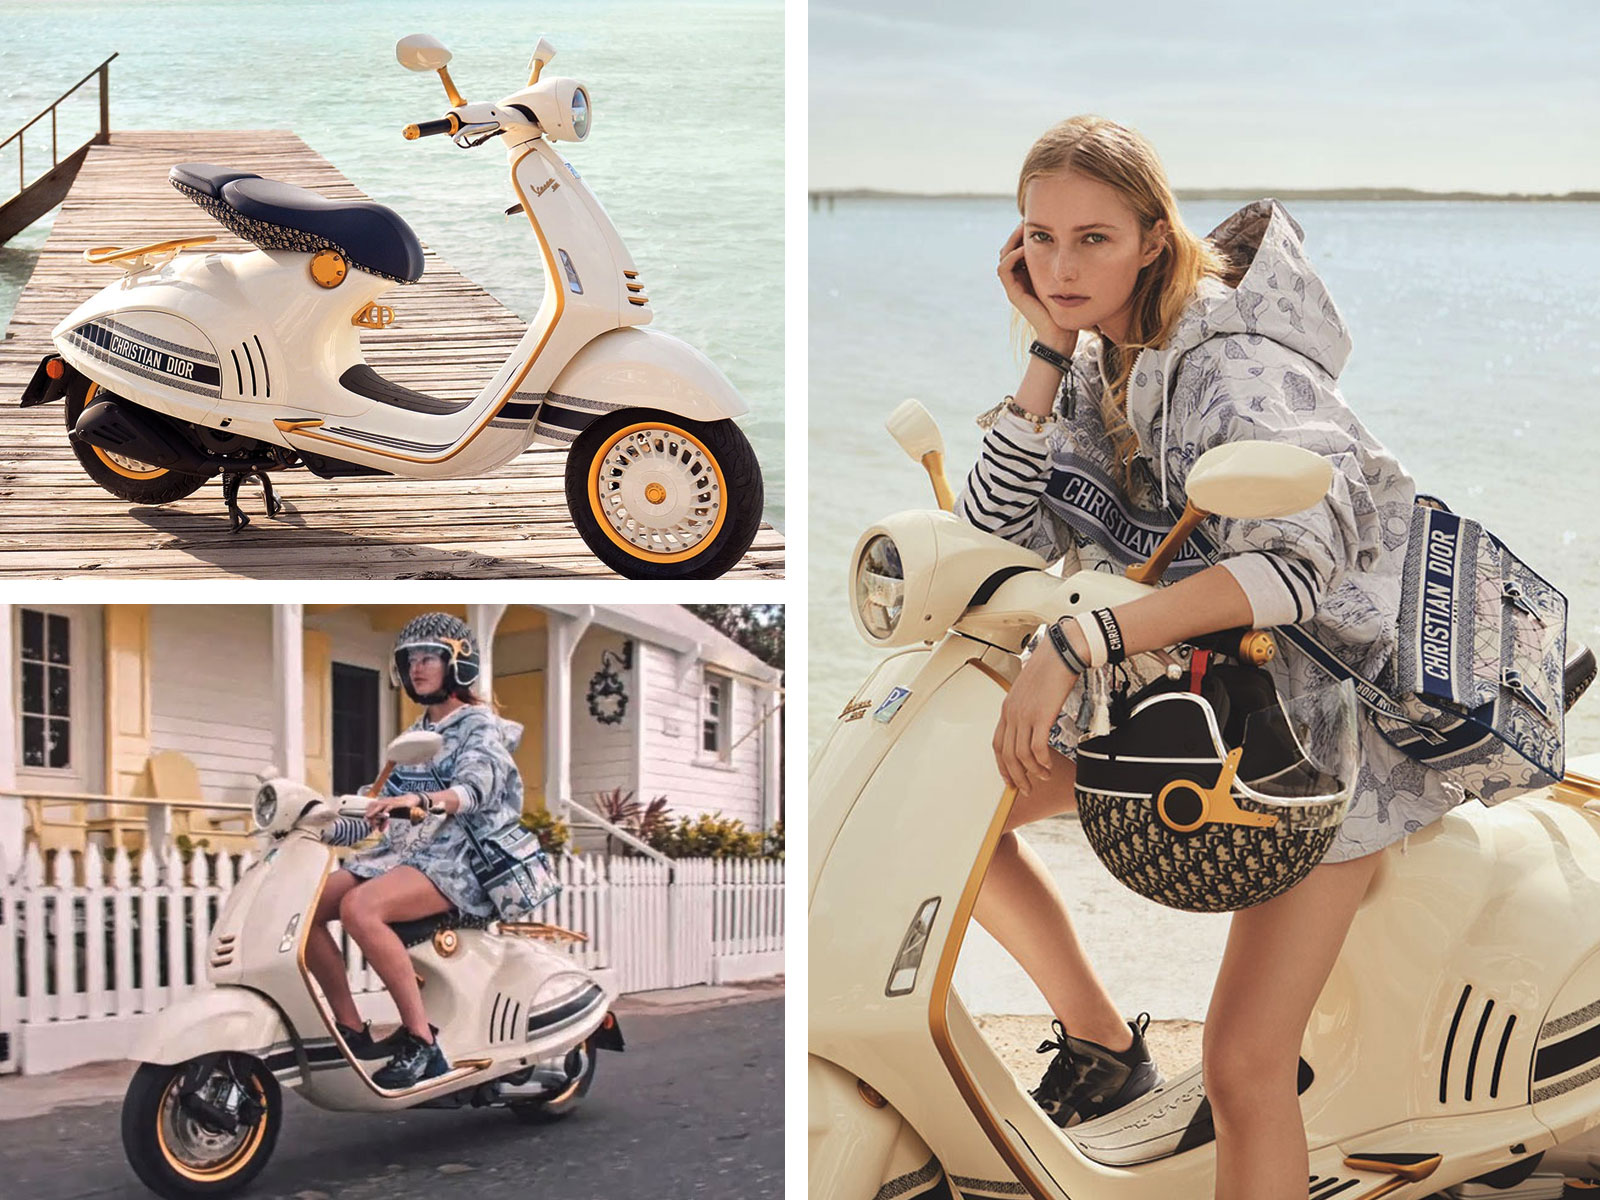 Model on Vespa Dior Scooter